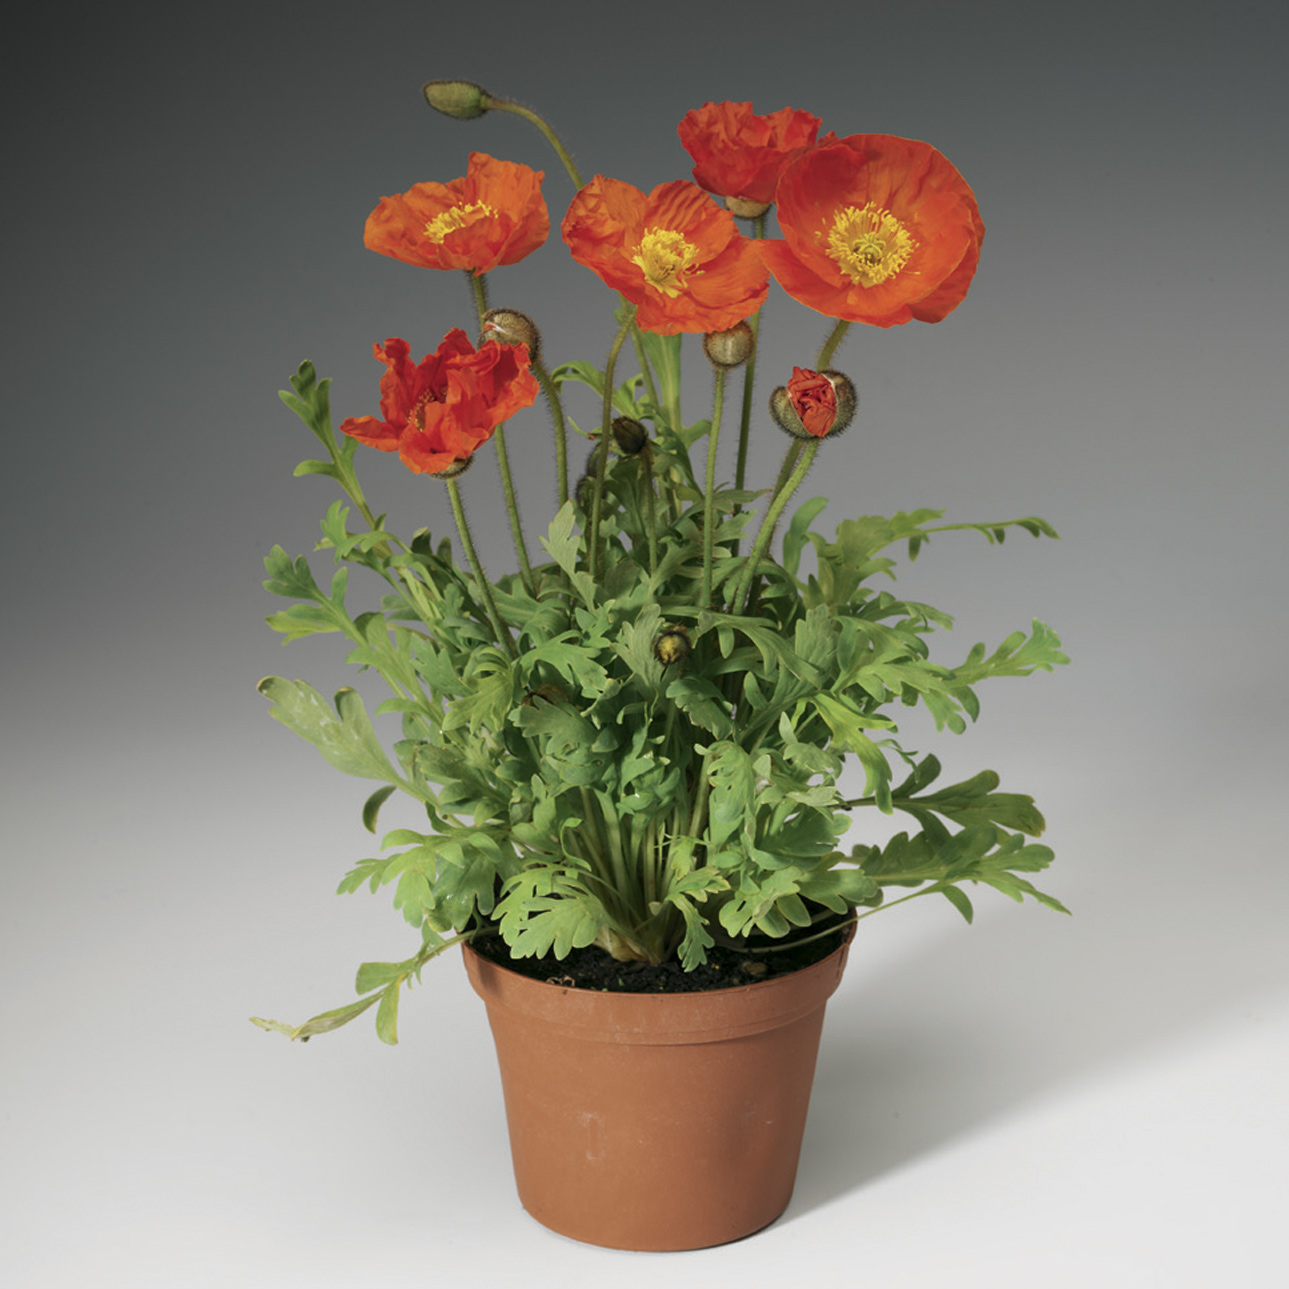 HR_Seed_Papaver_Spring_Fever®_Spring_Fever®_Orange_70004238.jpg